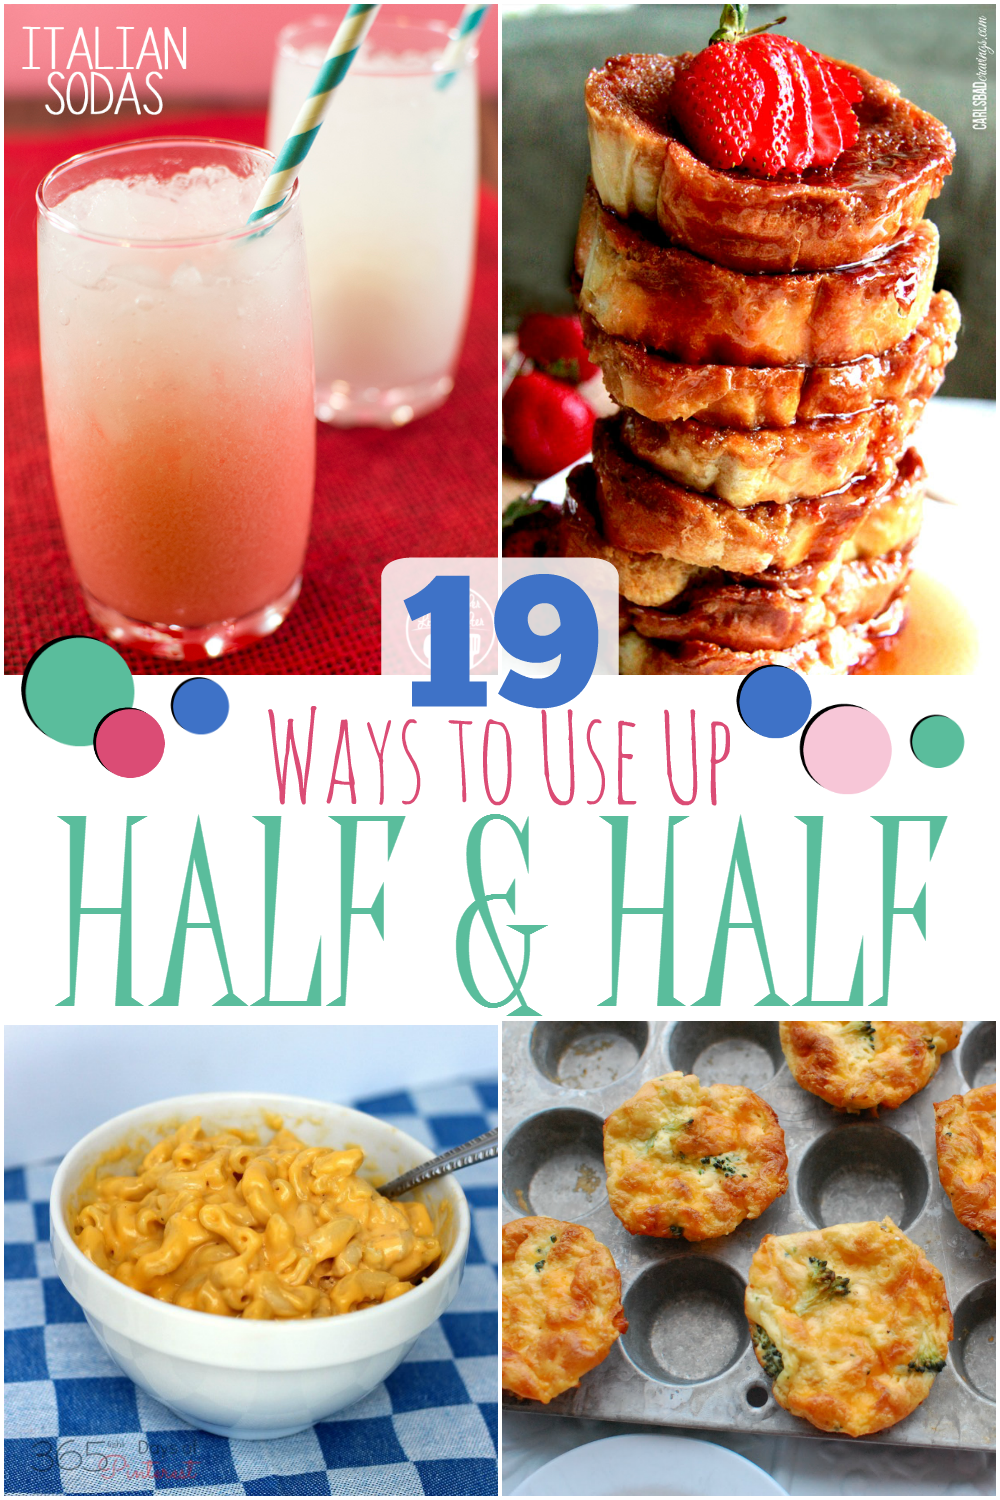 Got some half and half in your fridge that you need to use up? You can't go wrong with these 19 yummy recipes for using up leftover half and half!